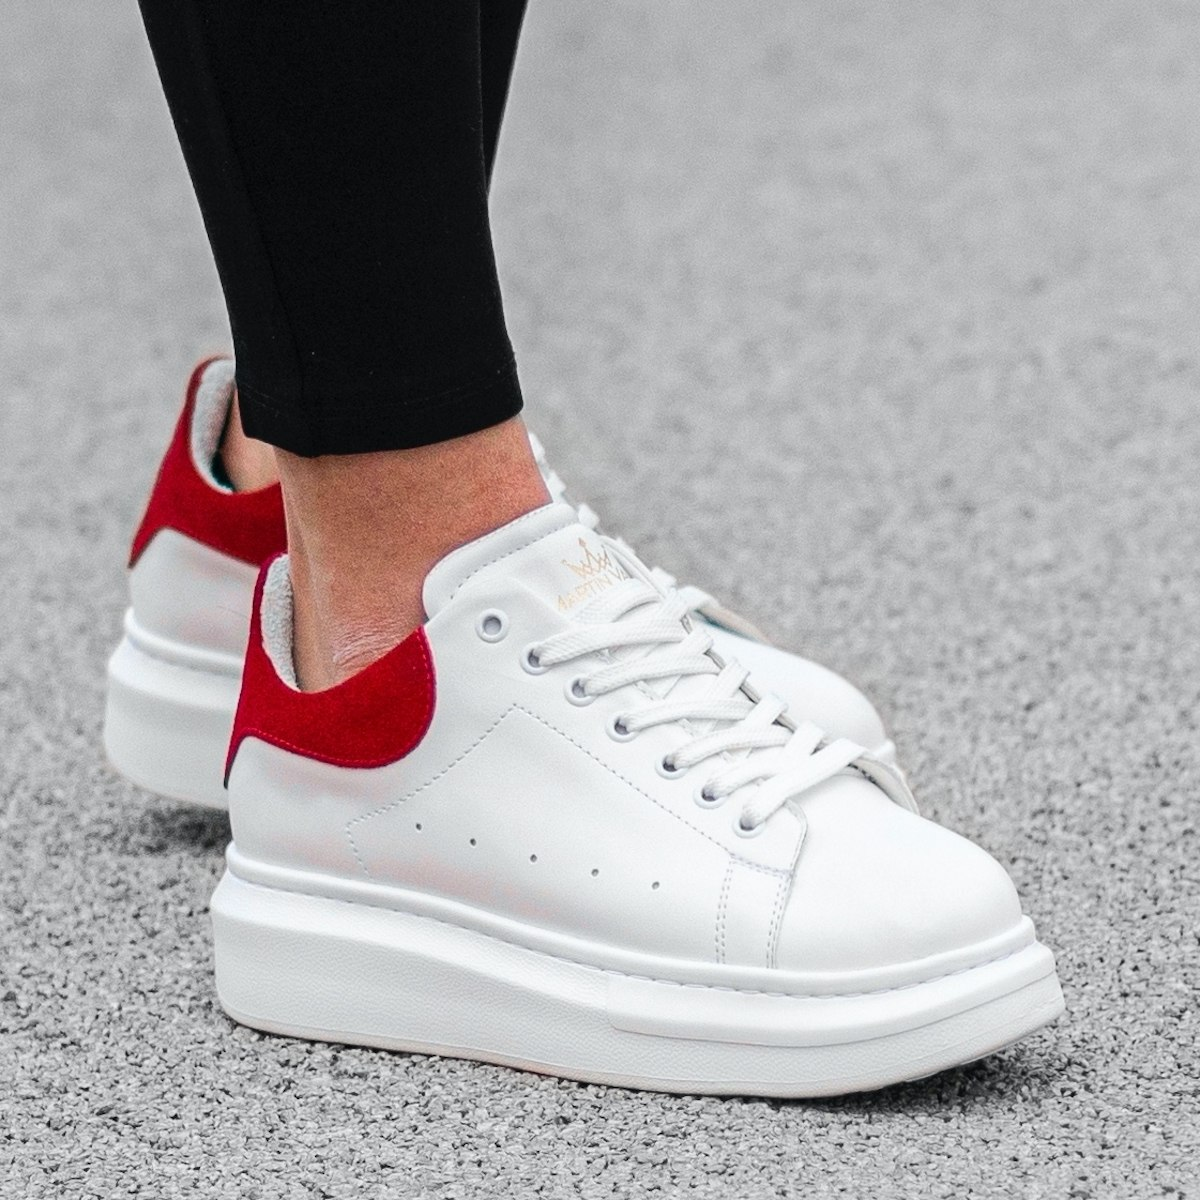 Martin Valen Women High Sole Sneakers White&Red